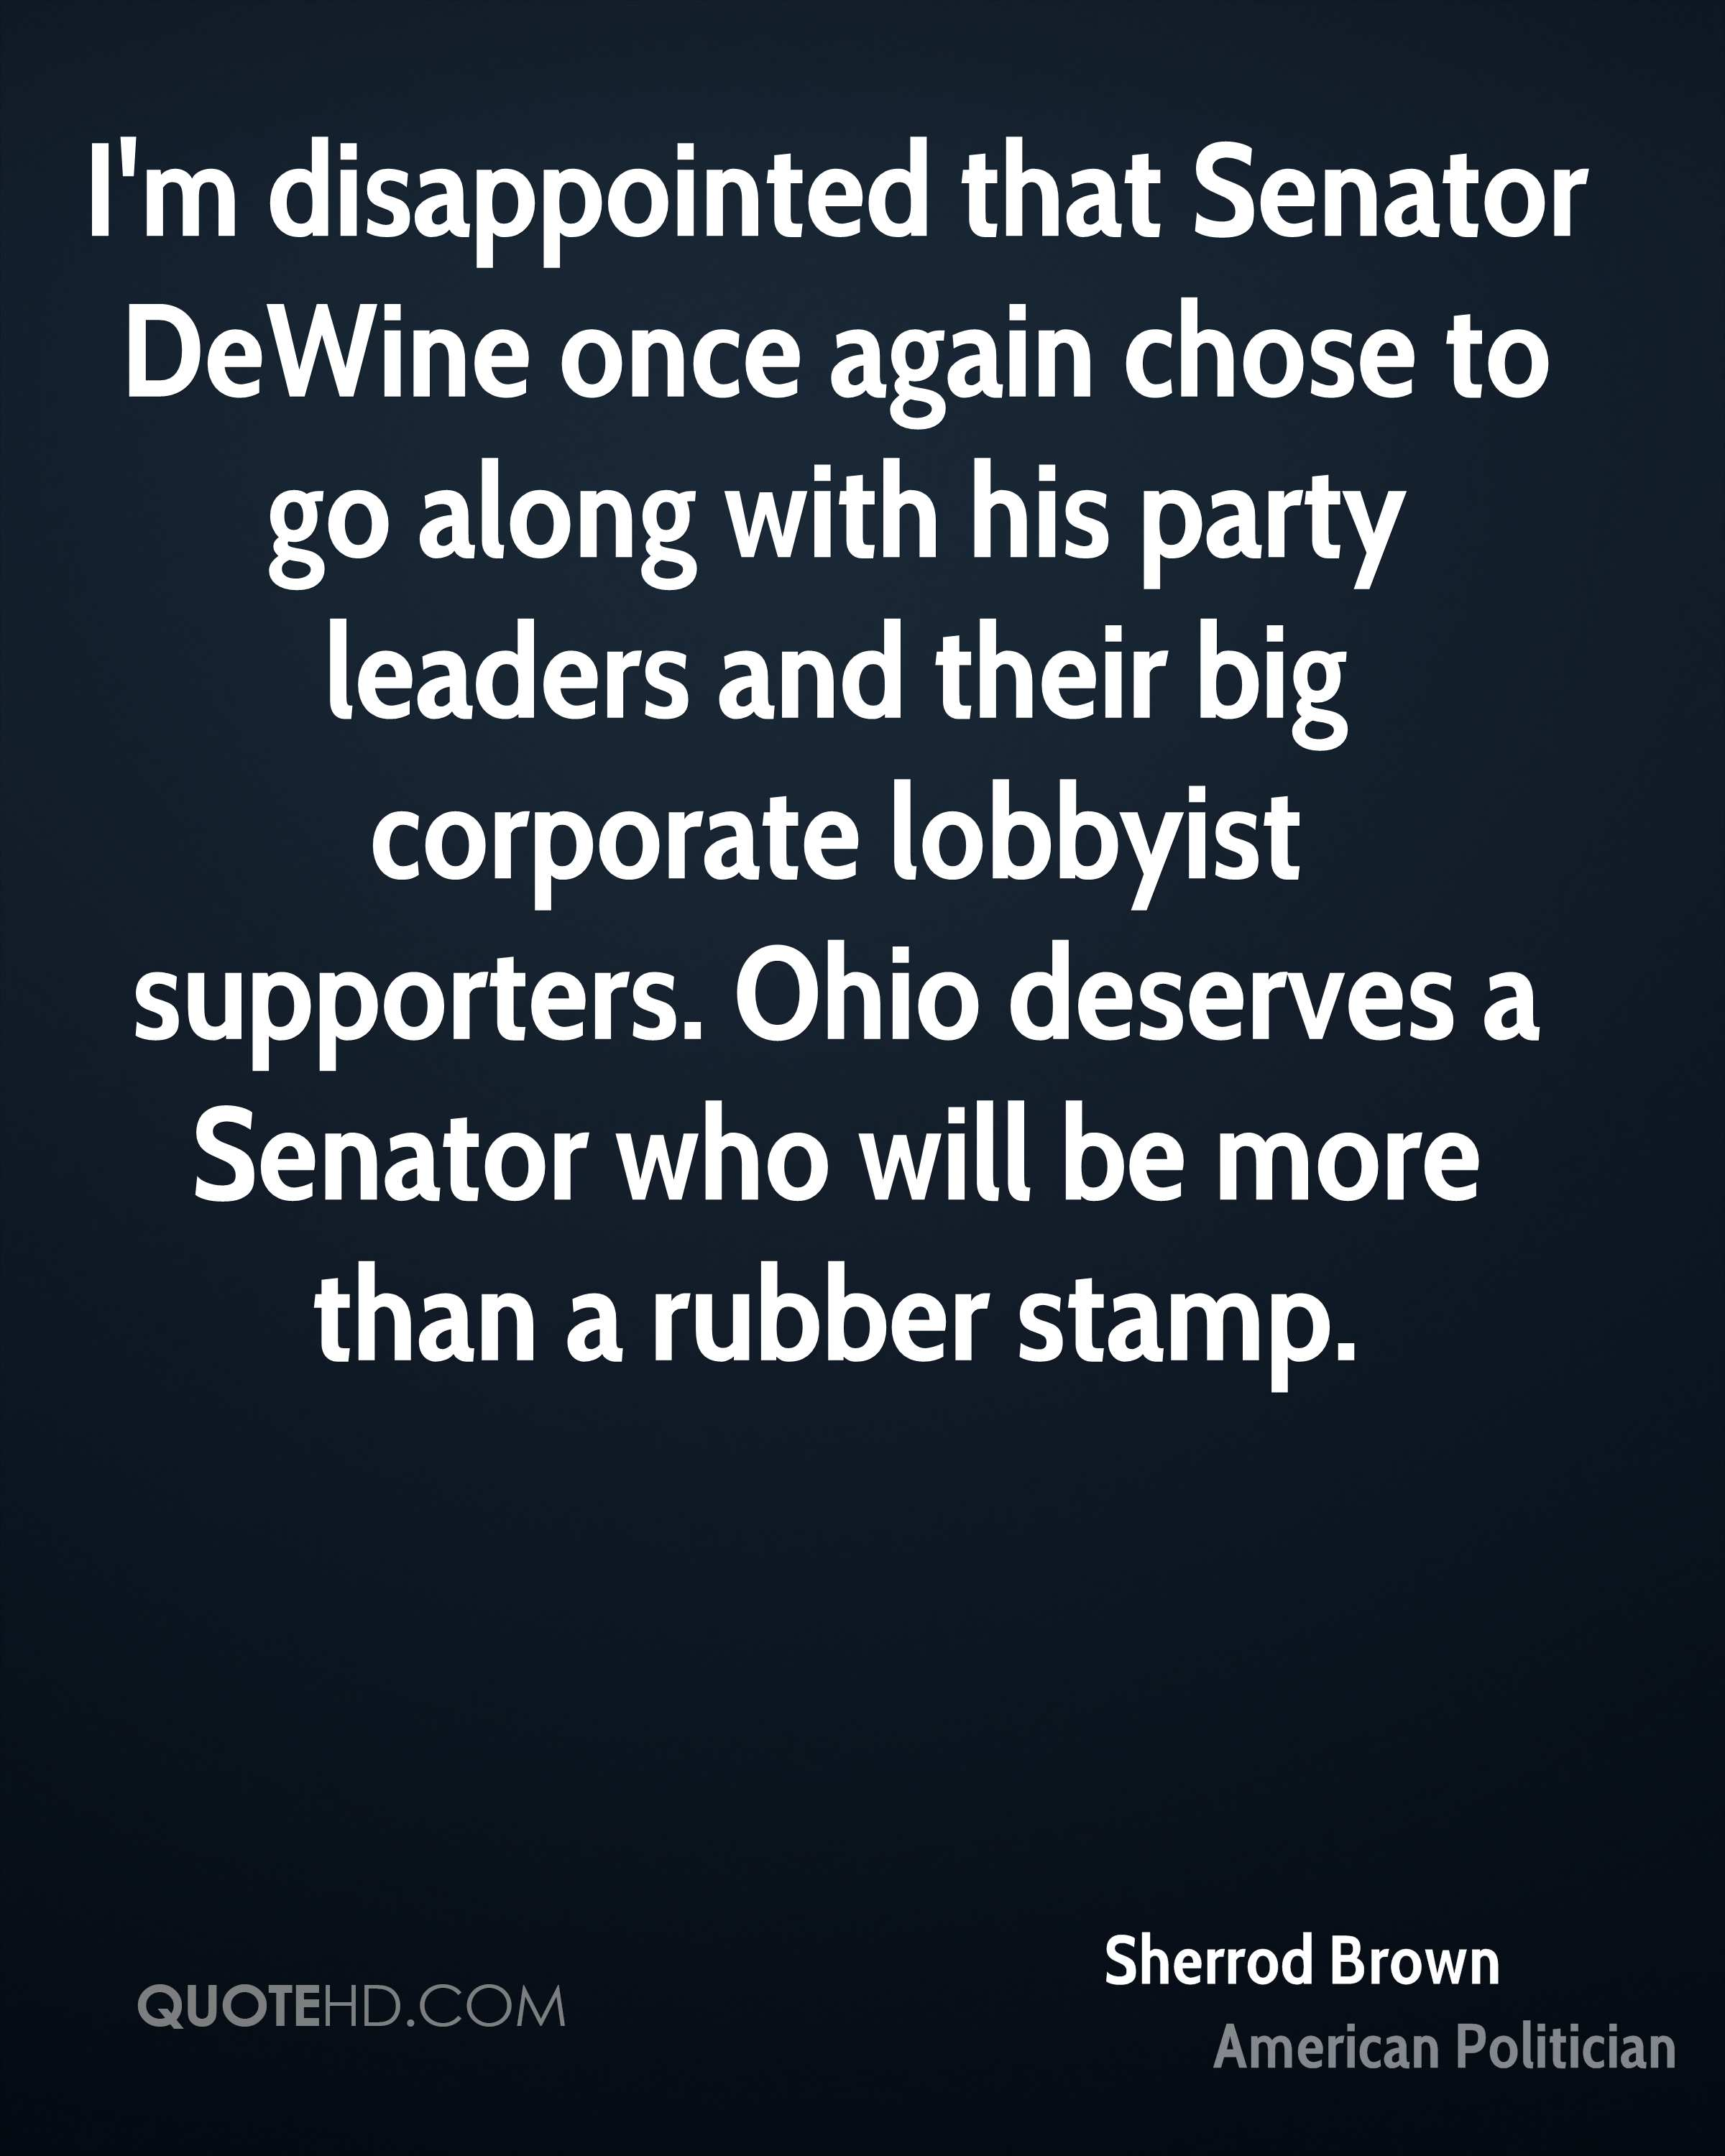 I'm disappointed that Senator DeWine once again chose to go along with his party leaders and their big corporate lobbyist supporters. Ohio deserves a Senator who will be more than a rubber stamp.